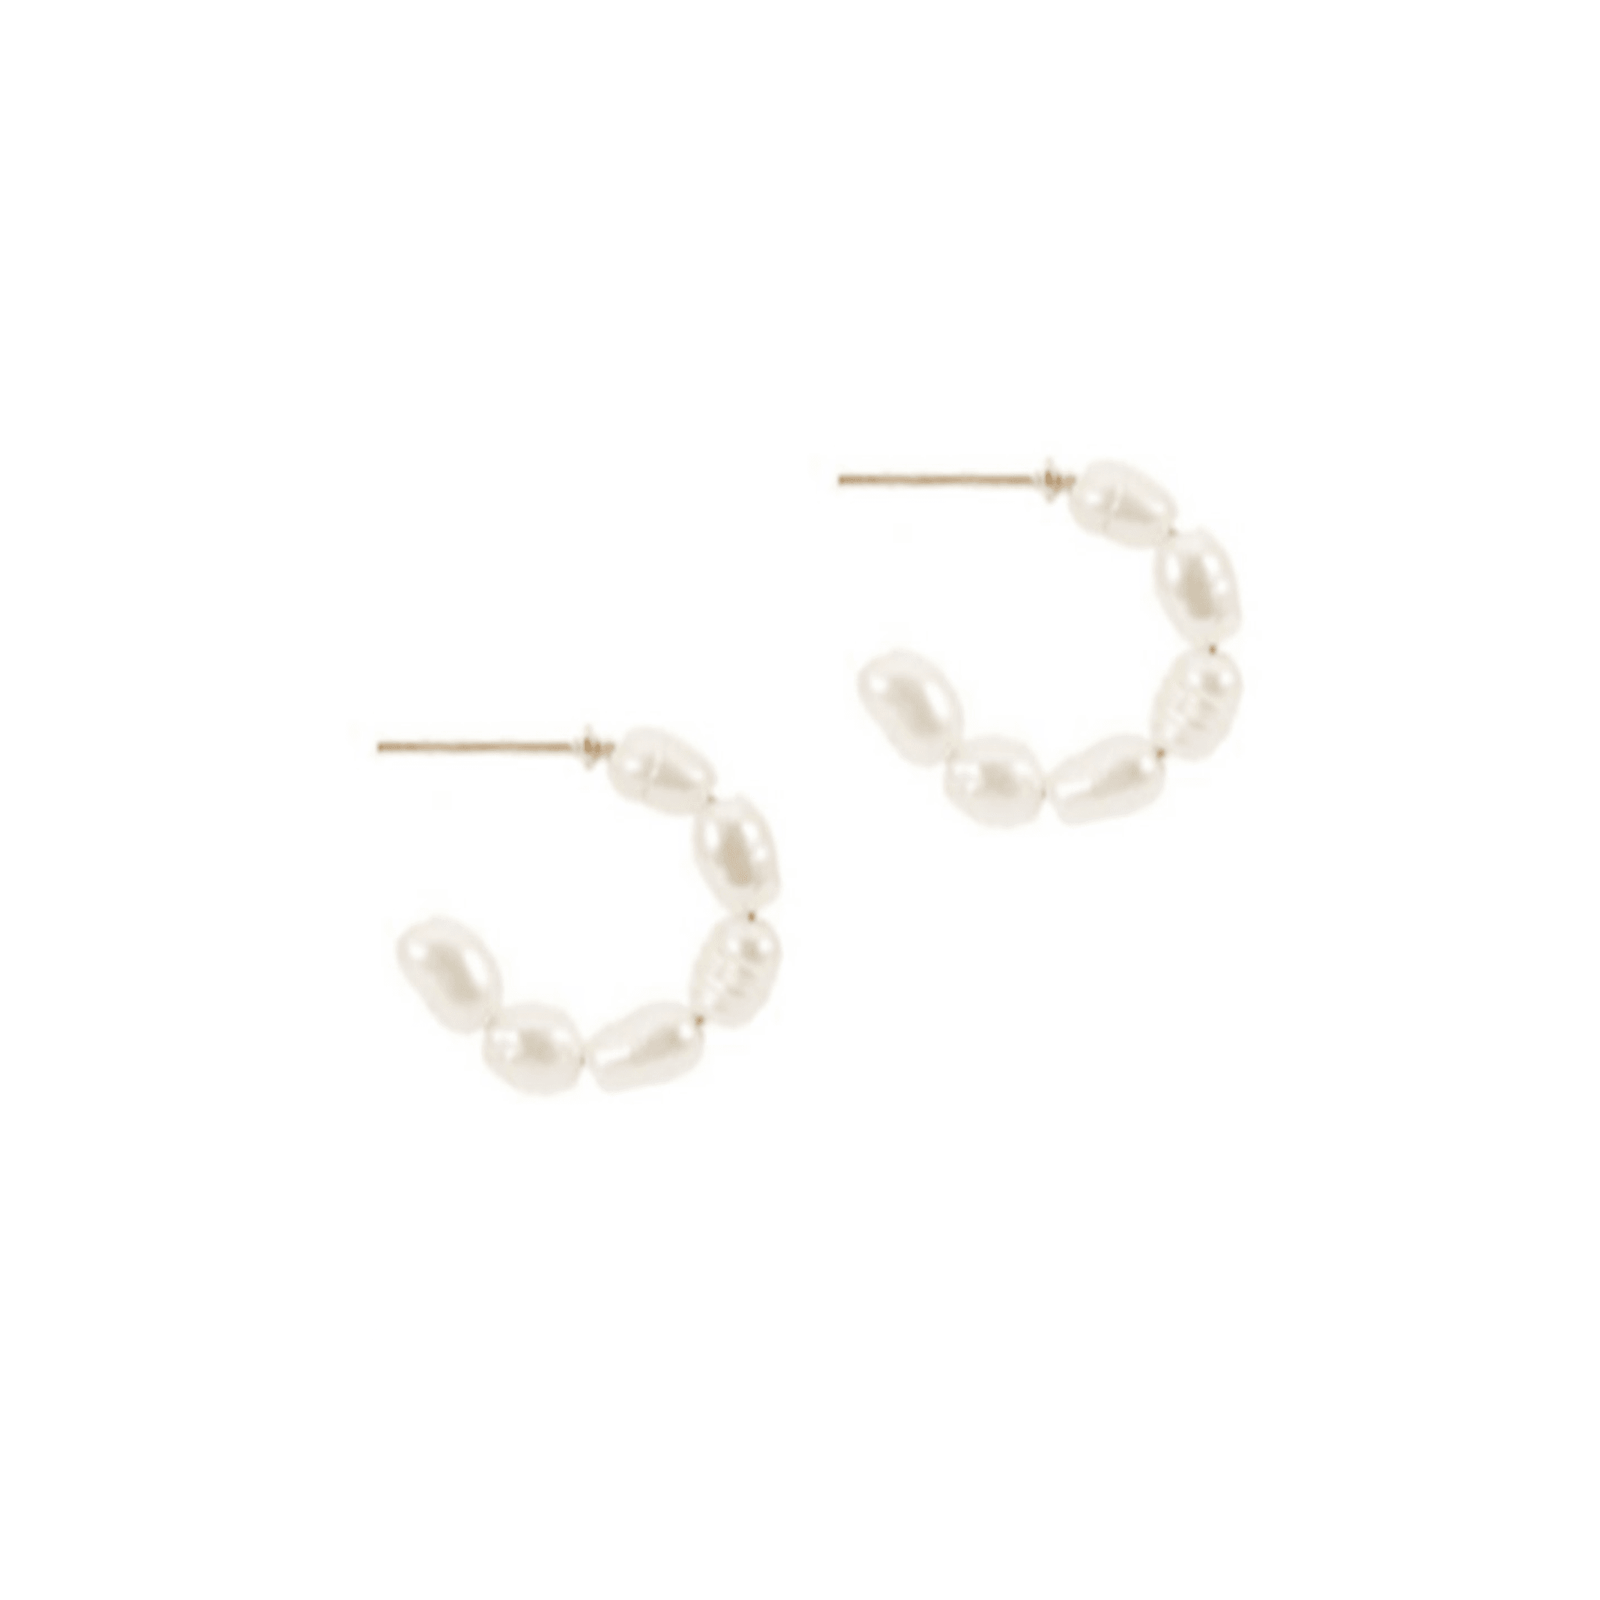 petite-princess-leia-hoopearrings-jewelry